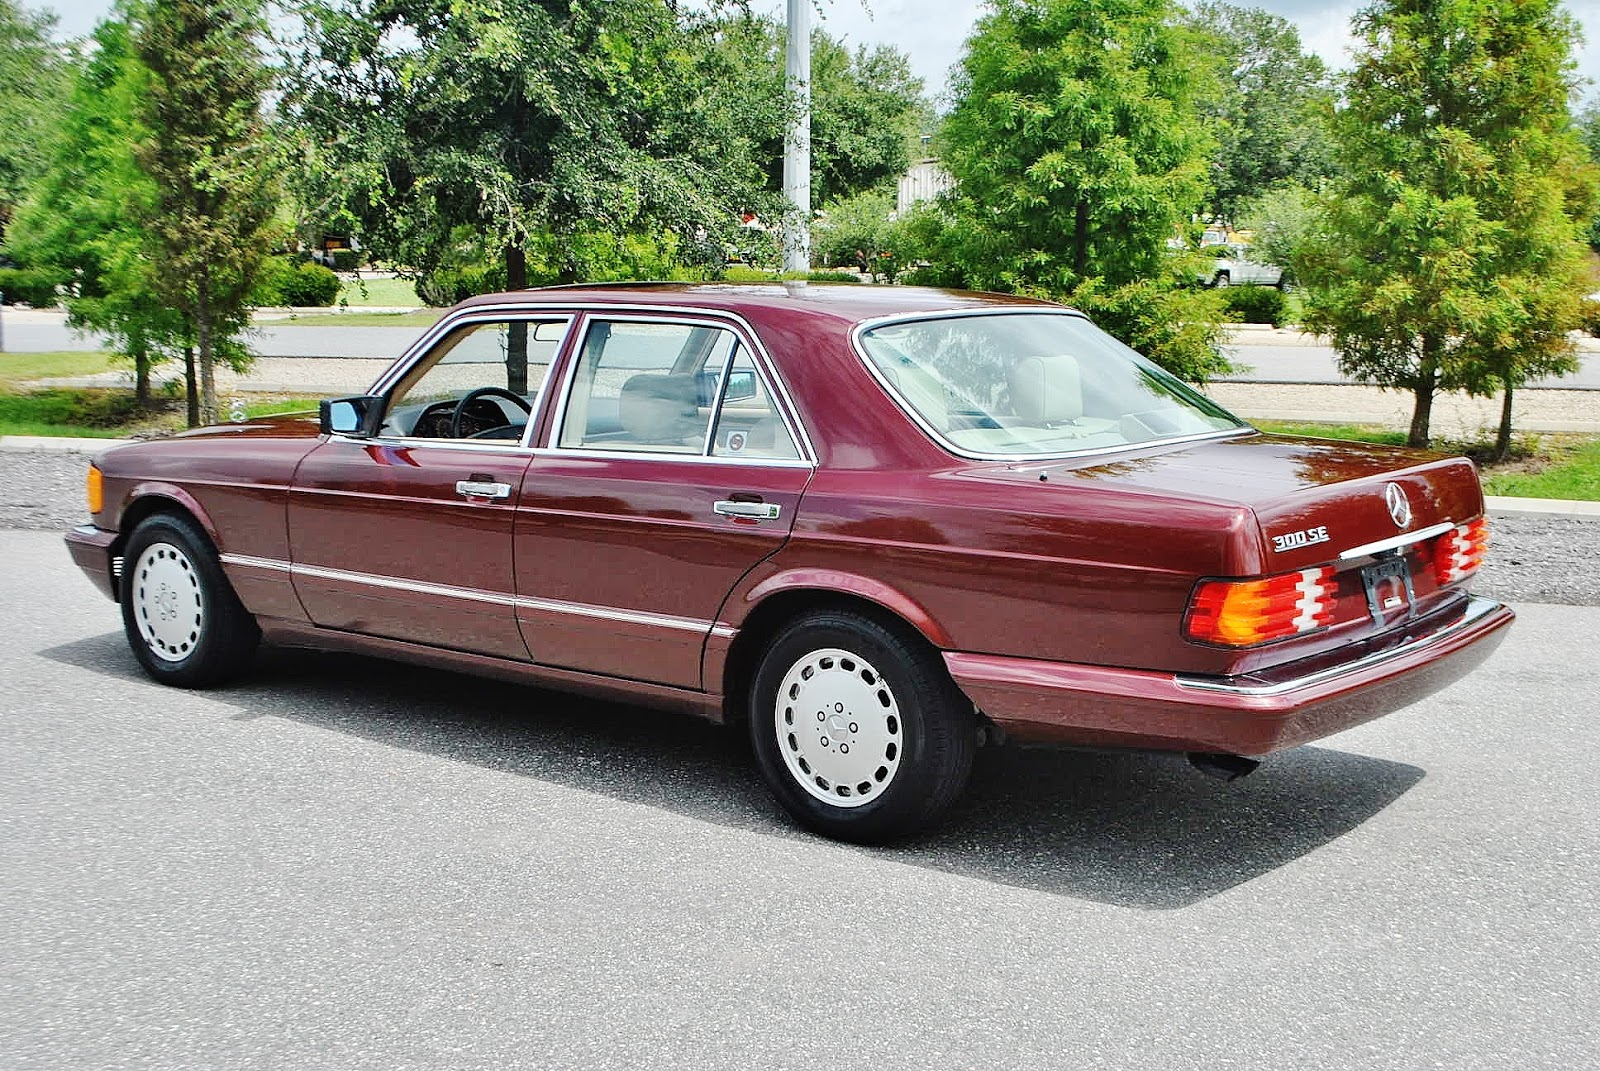 The 300se version of the big s class w126 is powered by the 3 0 liter m103 inline 6 mated to a 4 speed automatic gearbox power is rated at 179 horsepower